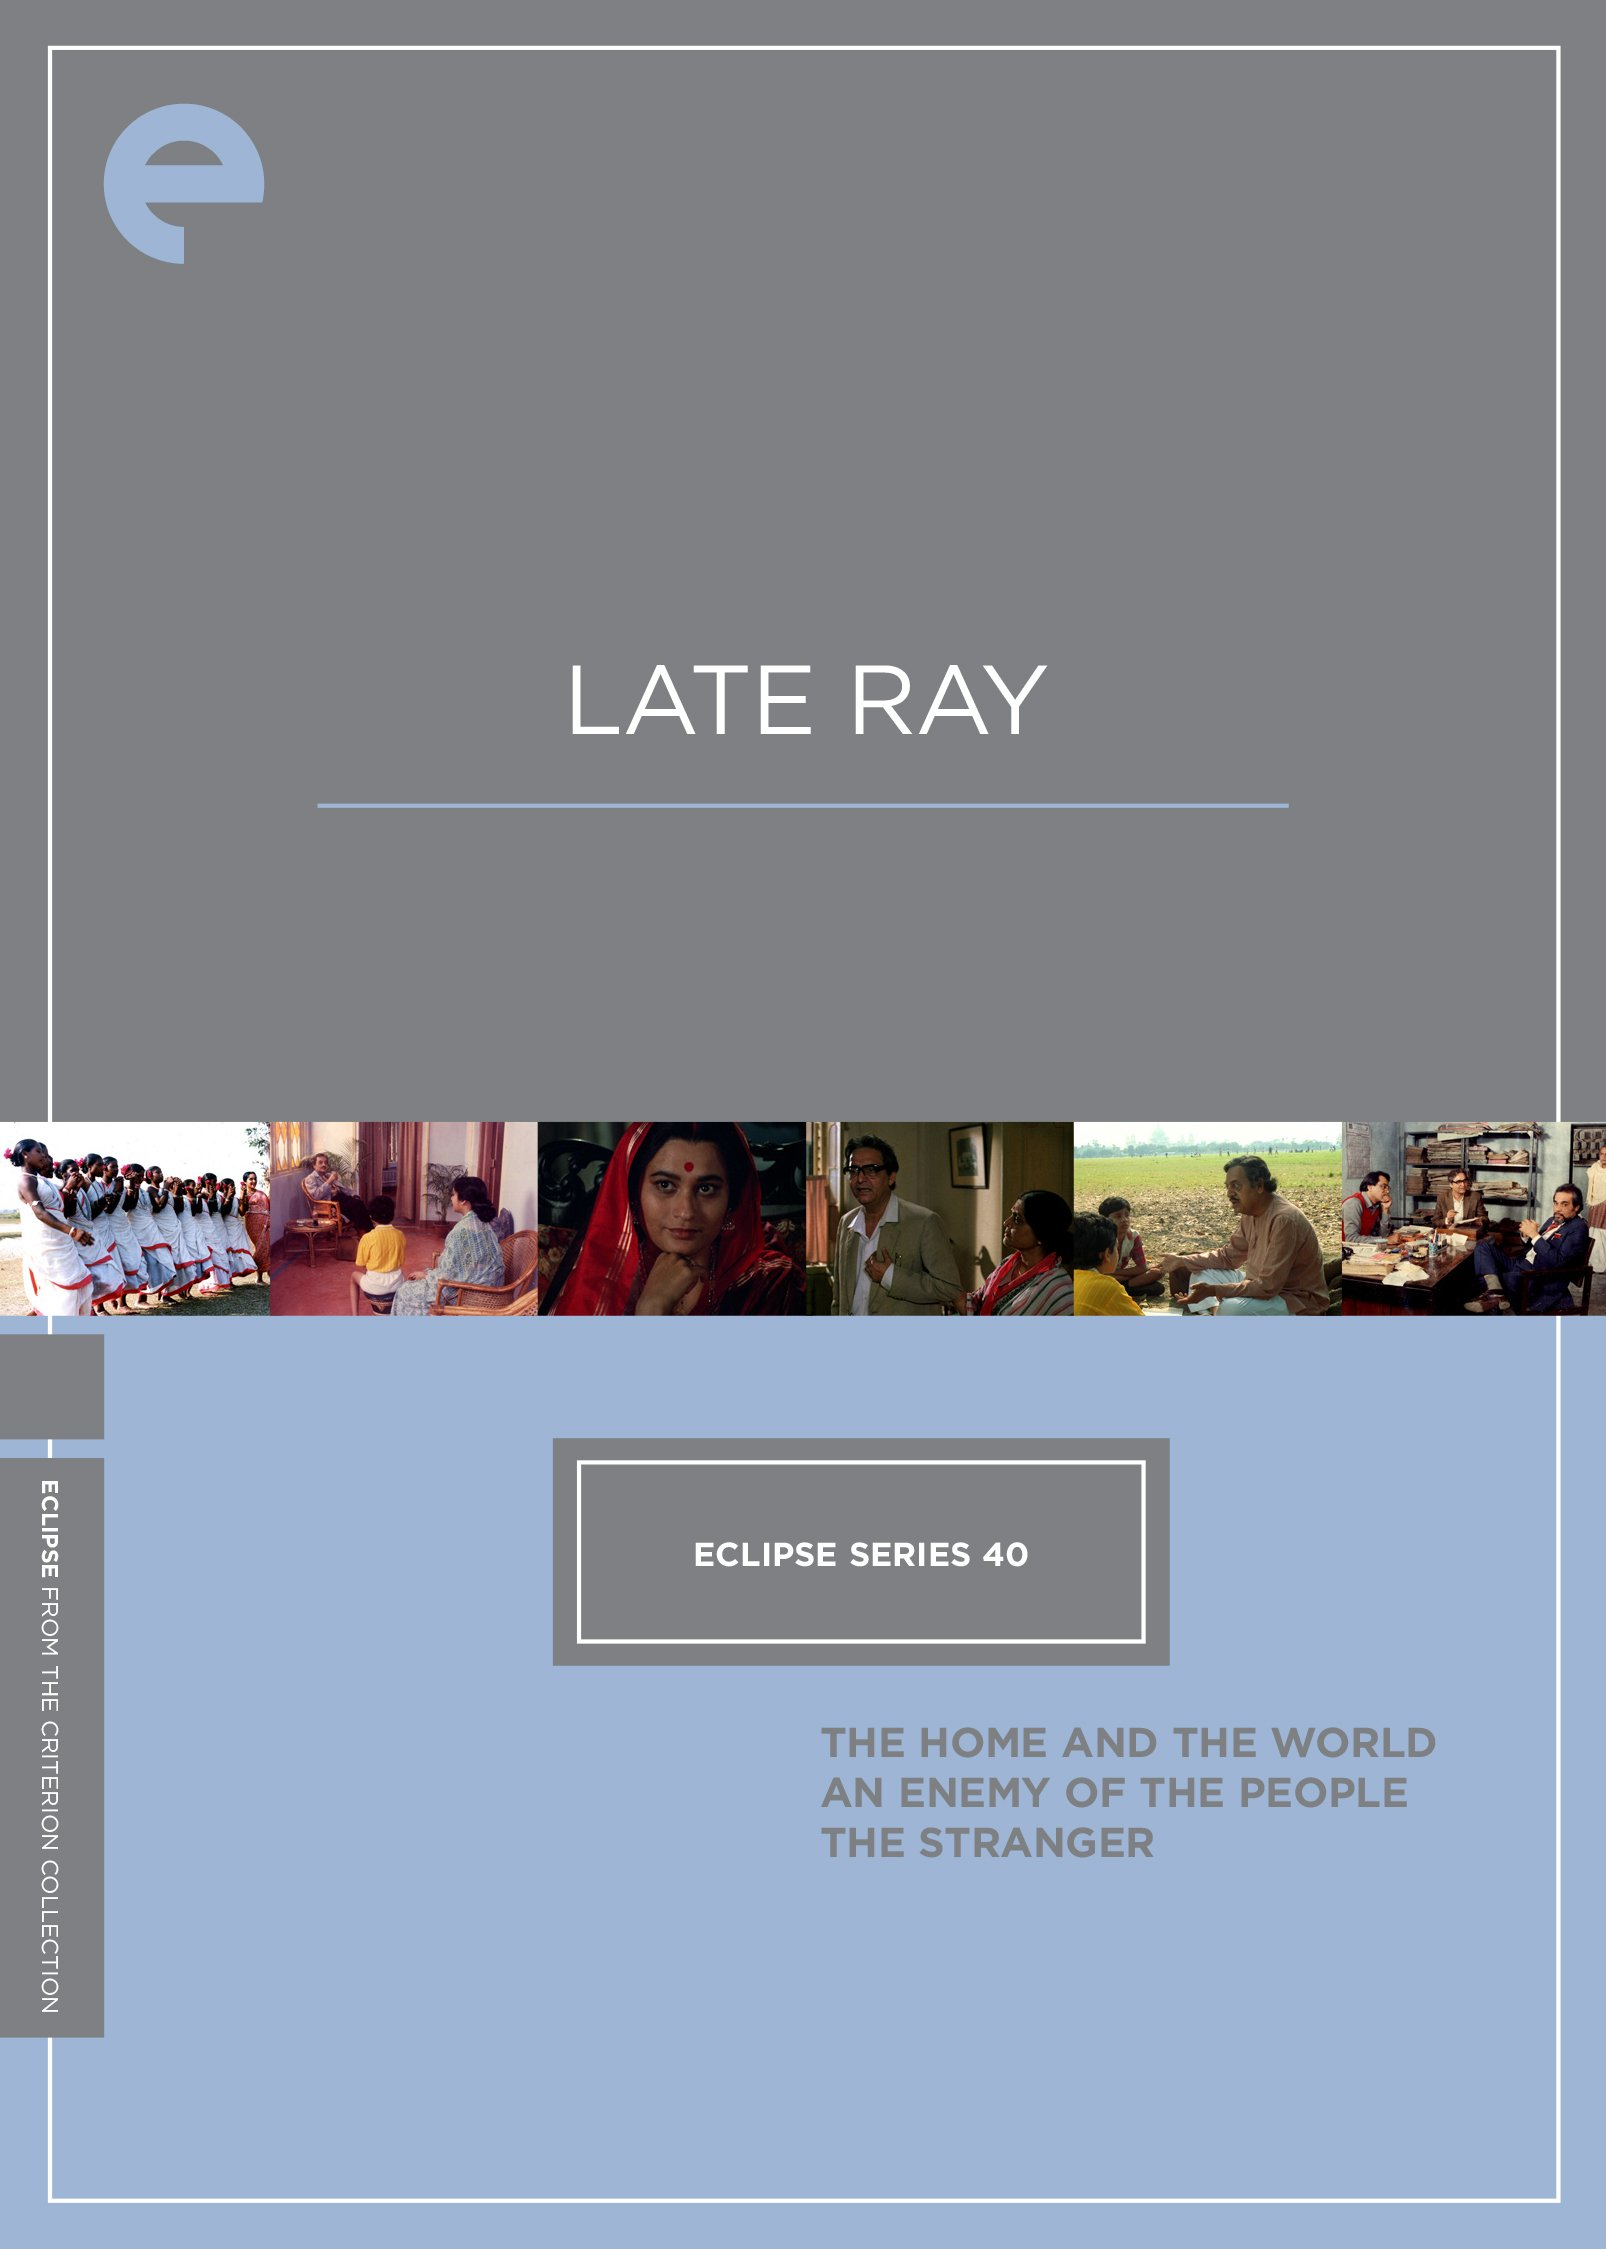 Eclipse Series 40: Late Ray (The Home and the World / An Enemy of the People / The Stranger) (The Criterion Collection)